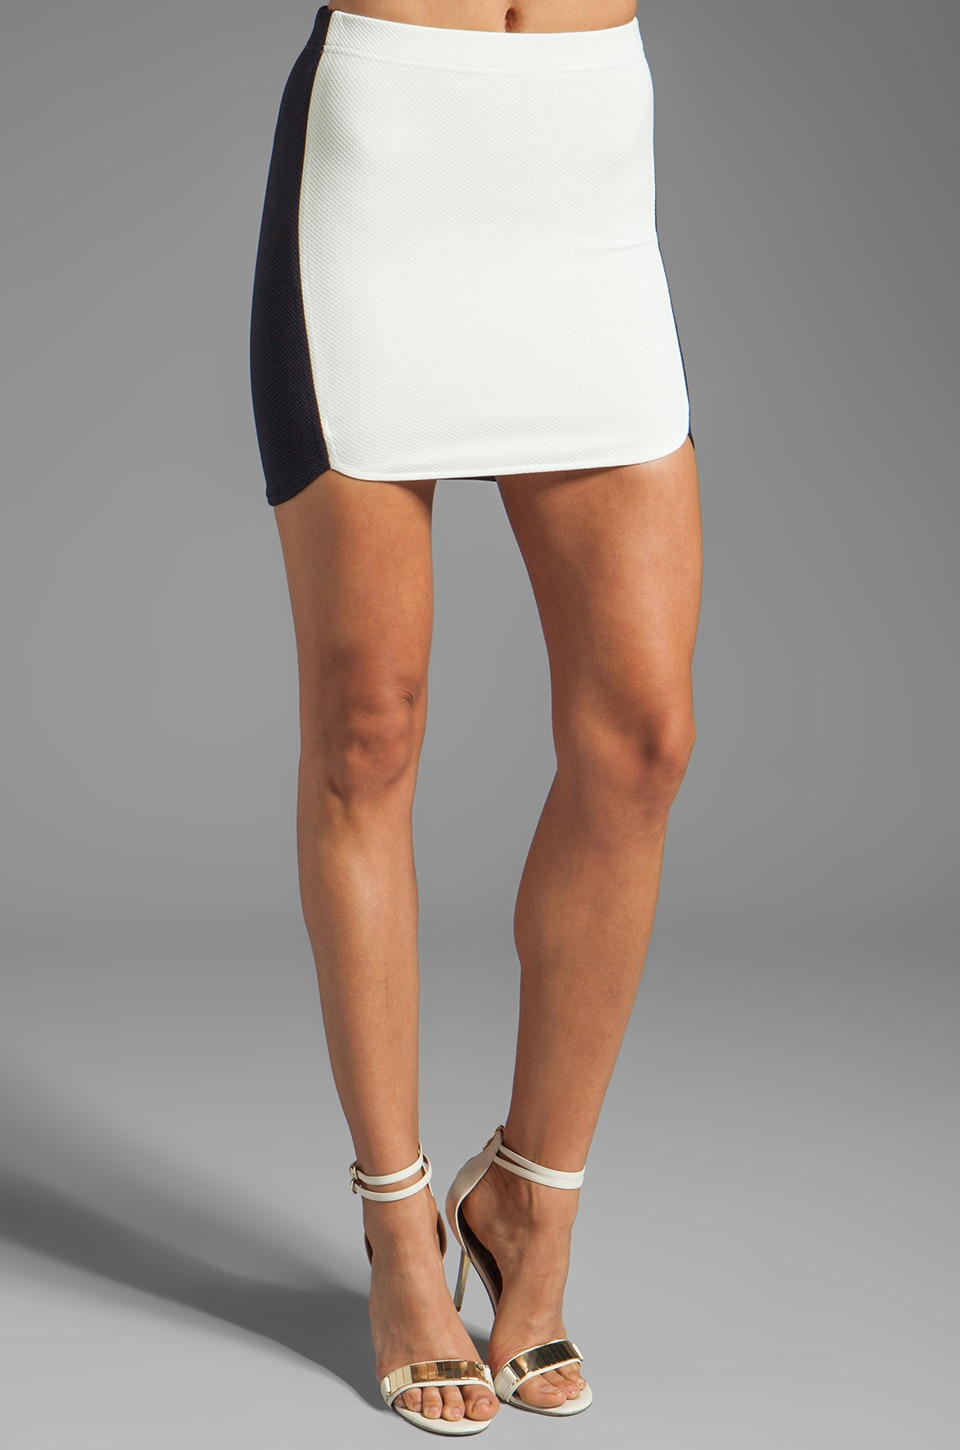 BEC&BRIDGE Abella Mini Skirt in Contrast